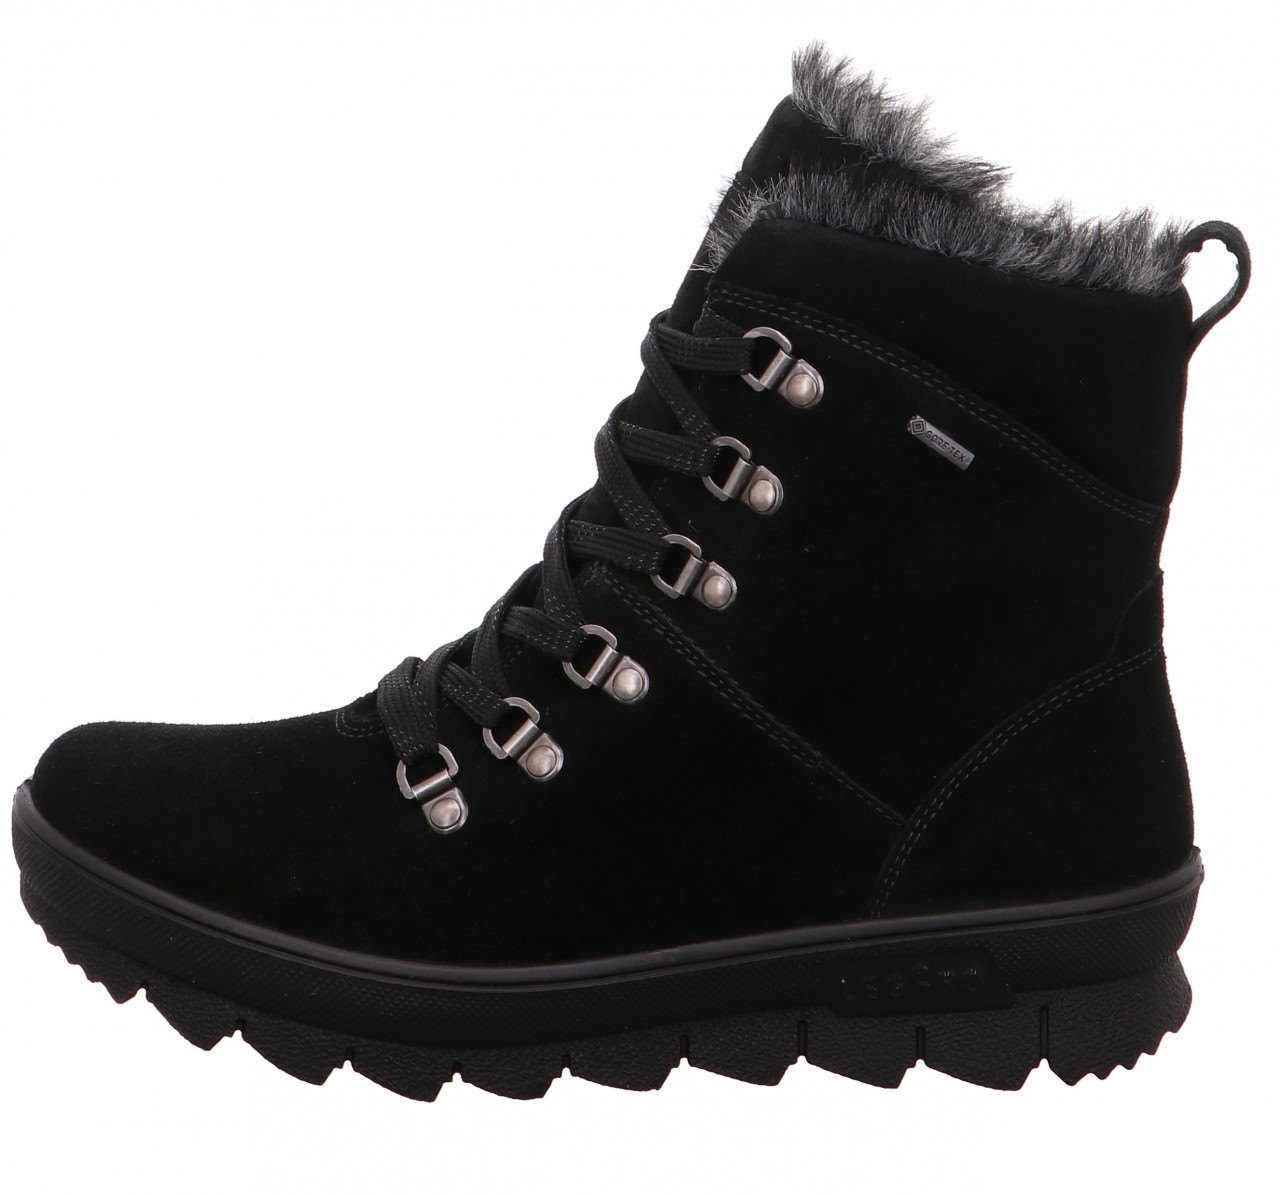 "NOVARA 503-00 BLACK WOMEN'S NOVARA 503-72 OCEAN WOMEN'S NOVARA is the classic among the boots of legero: rustic details such as fabric laces and metal eyelets as a holder characterize this model. The non-slip, yet very light and flexible sole with a striking sawtooth profile offers optimal stability on winter surfaces. The cozy warm lining in fur look with the proven GORE-TEX function is guaranteed to be waterproof and with its breathability ensures optimum climate comfort in the shoe. NOVARA is equipped with replaceable insoles. The model is available in the comfort range ""G"". BLACK SKU 17263 REG 260. ALWAYS 239.00"